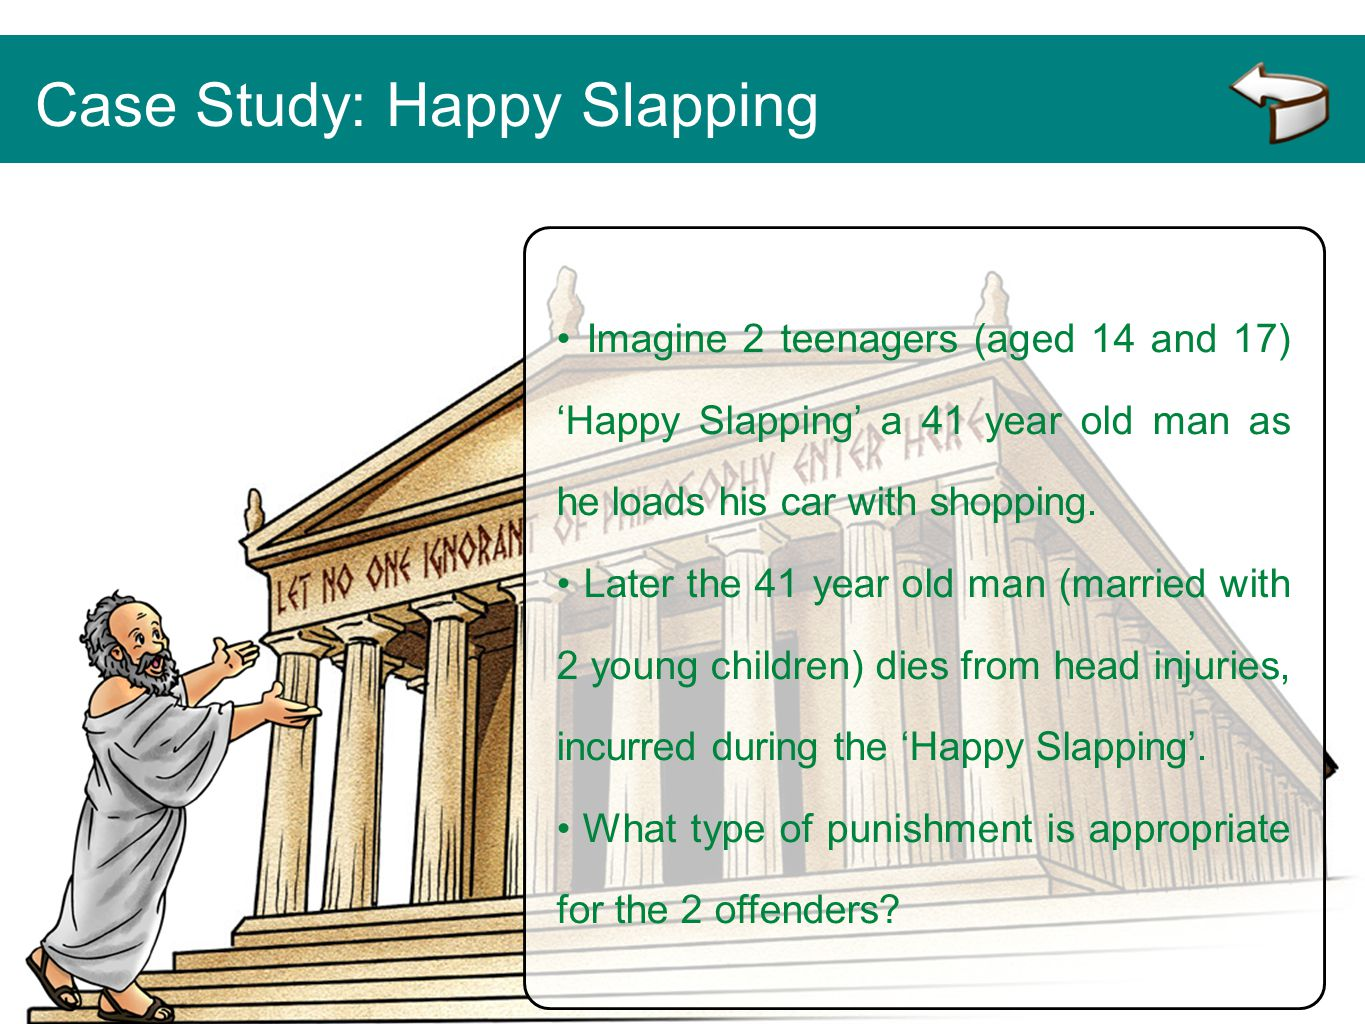 Case Study: Happy Slapping